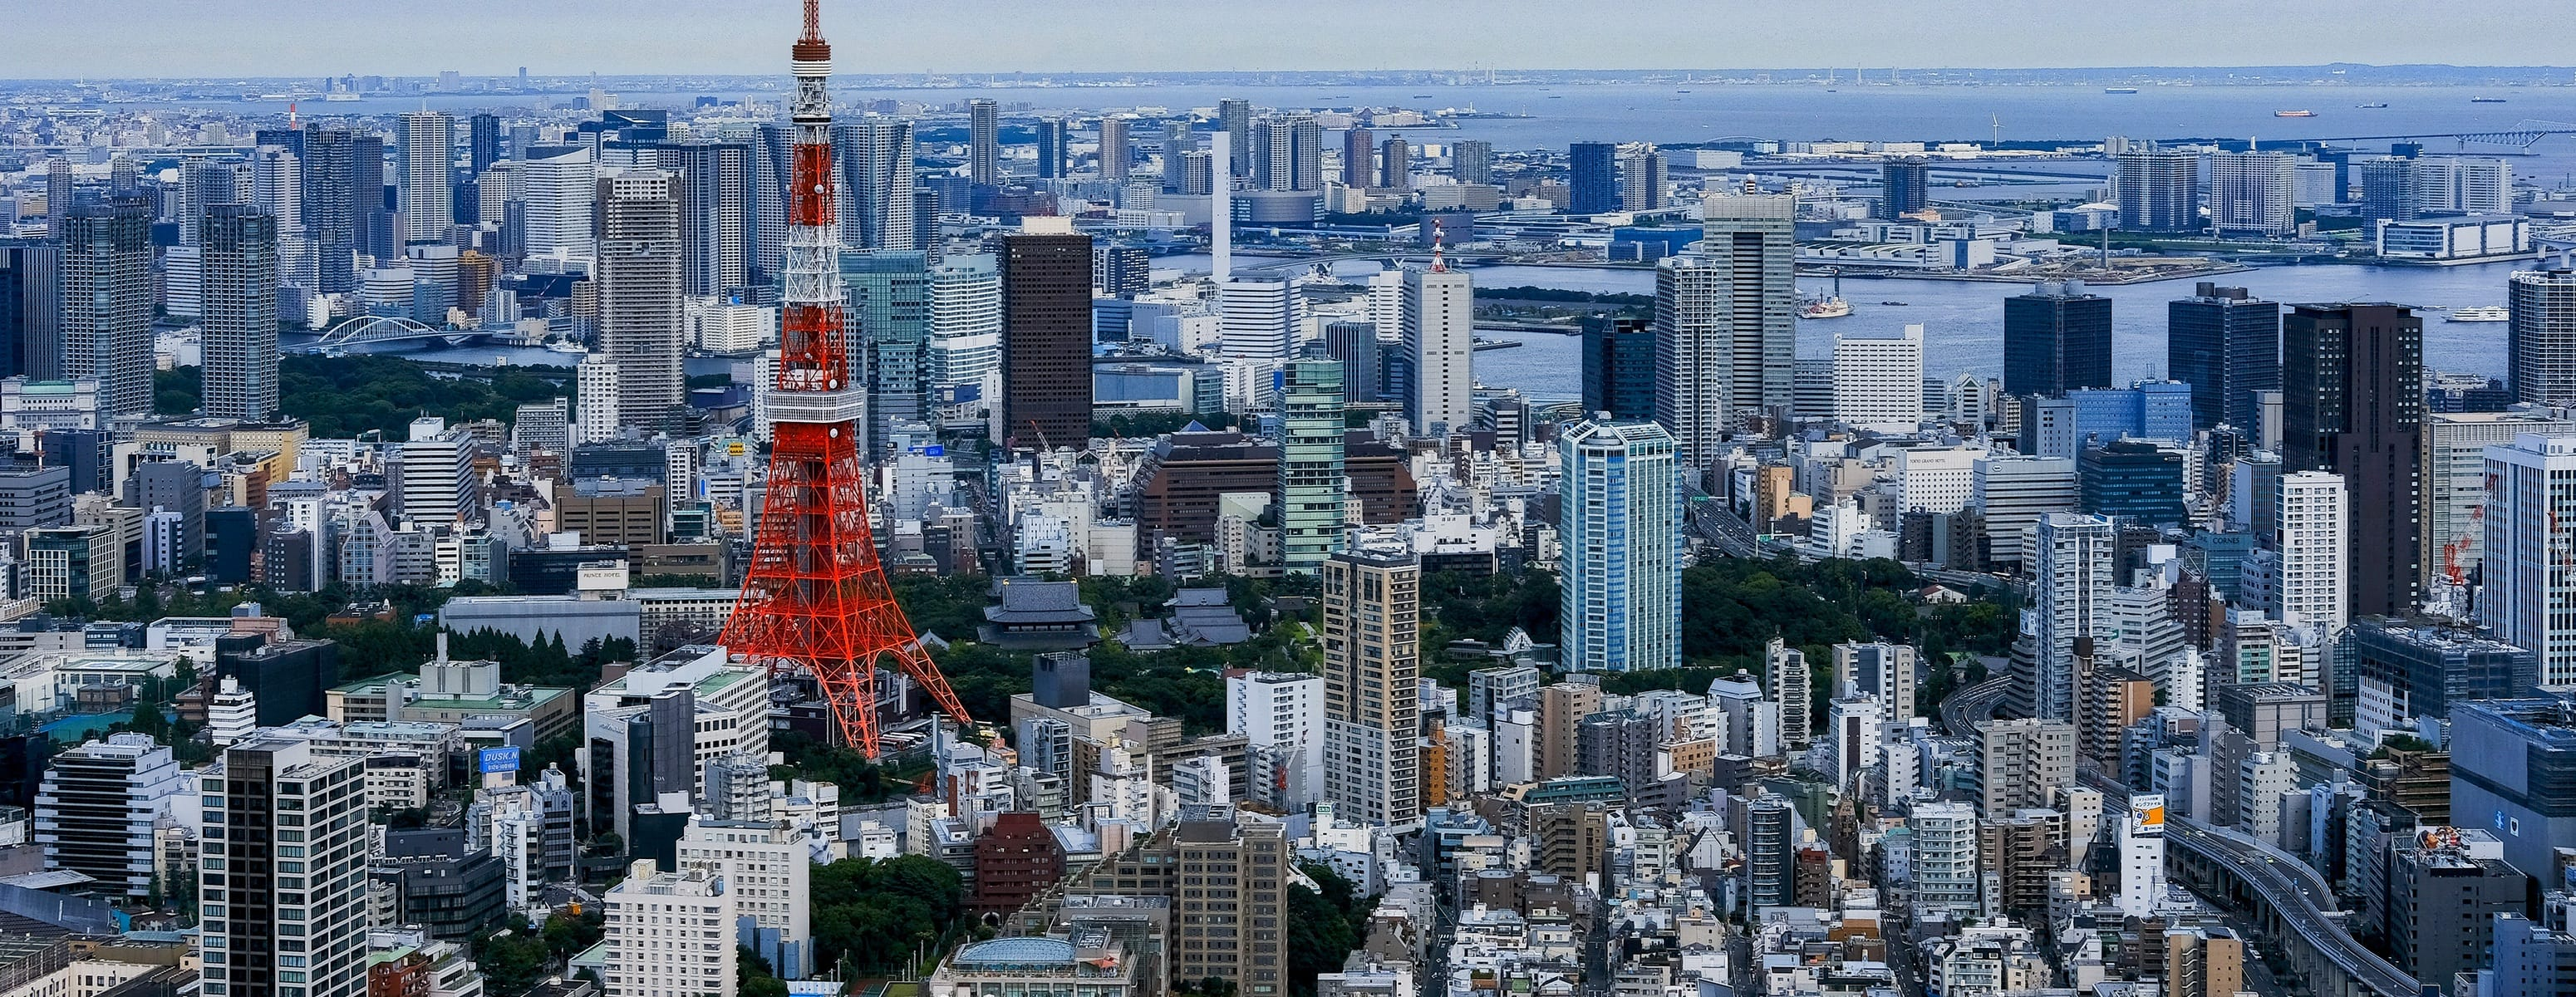 Tokyo 2018 (with Photos): Top 20 Places To Stay In Tokyo   Vacation  Rentals, Vacation Homes   Airbnb Tokyo, Japan: Tokyo Apartments U0026 Bnb Tokyo